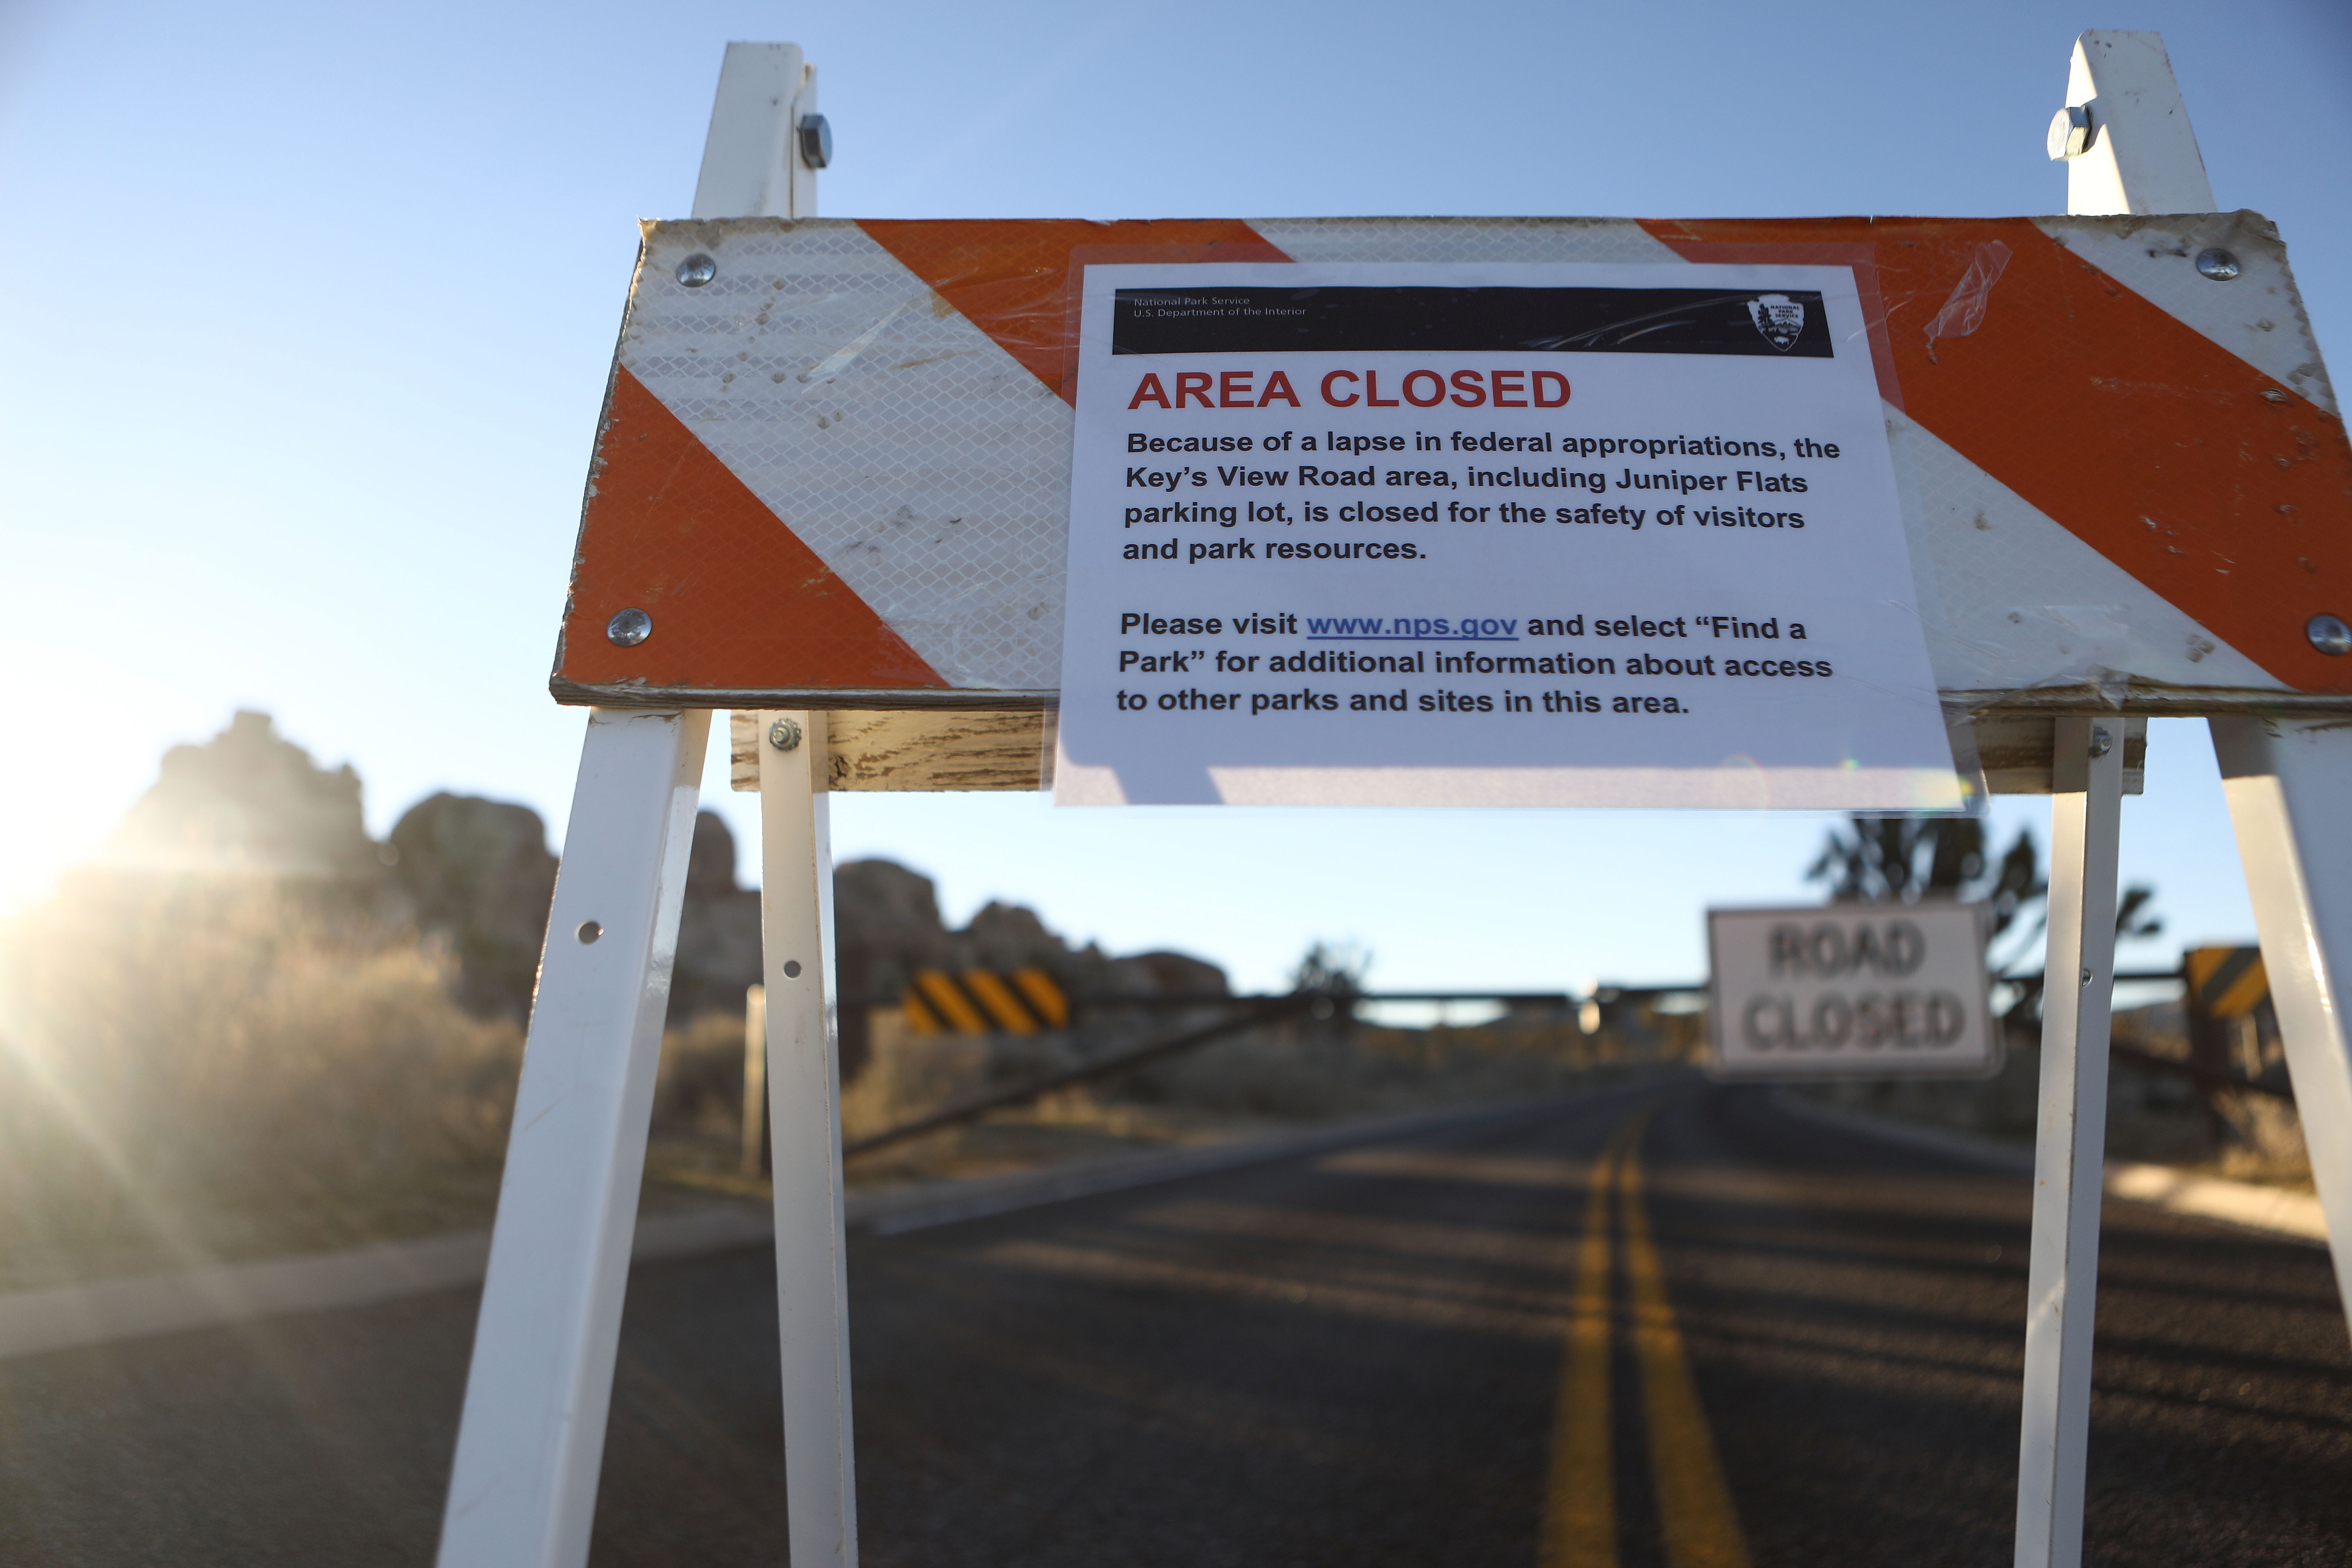 An 'Area Closed' sign is posted in front of a closed section of road at Joshua Tree National Park on Jan. 4